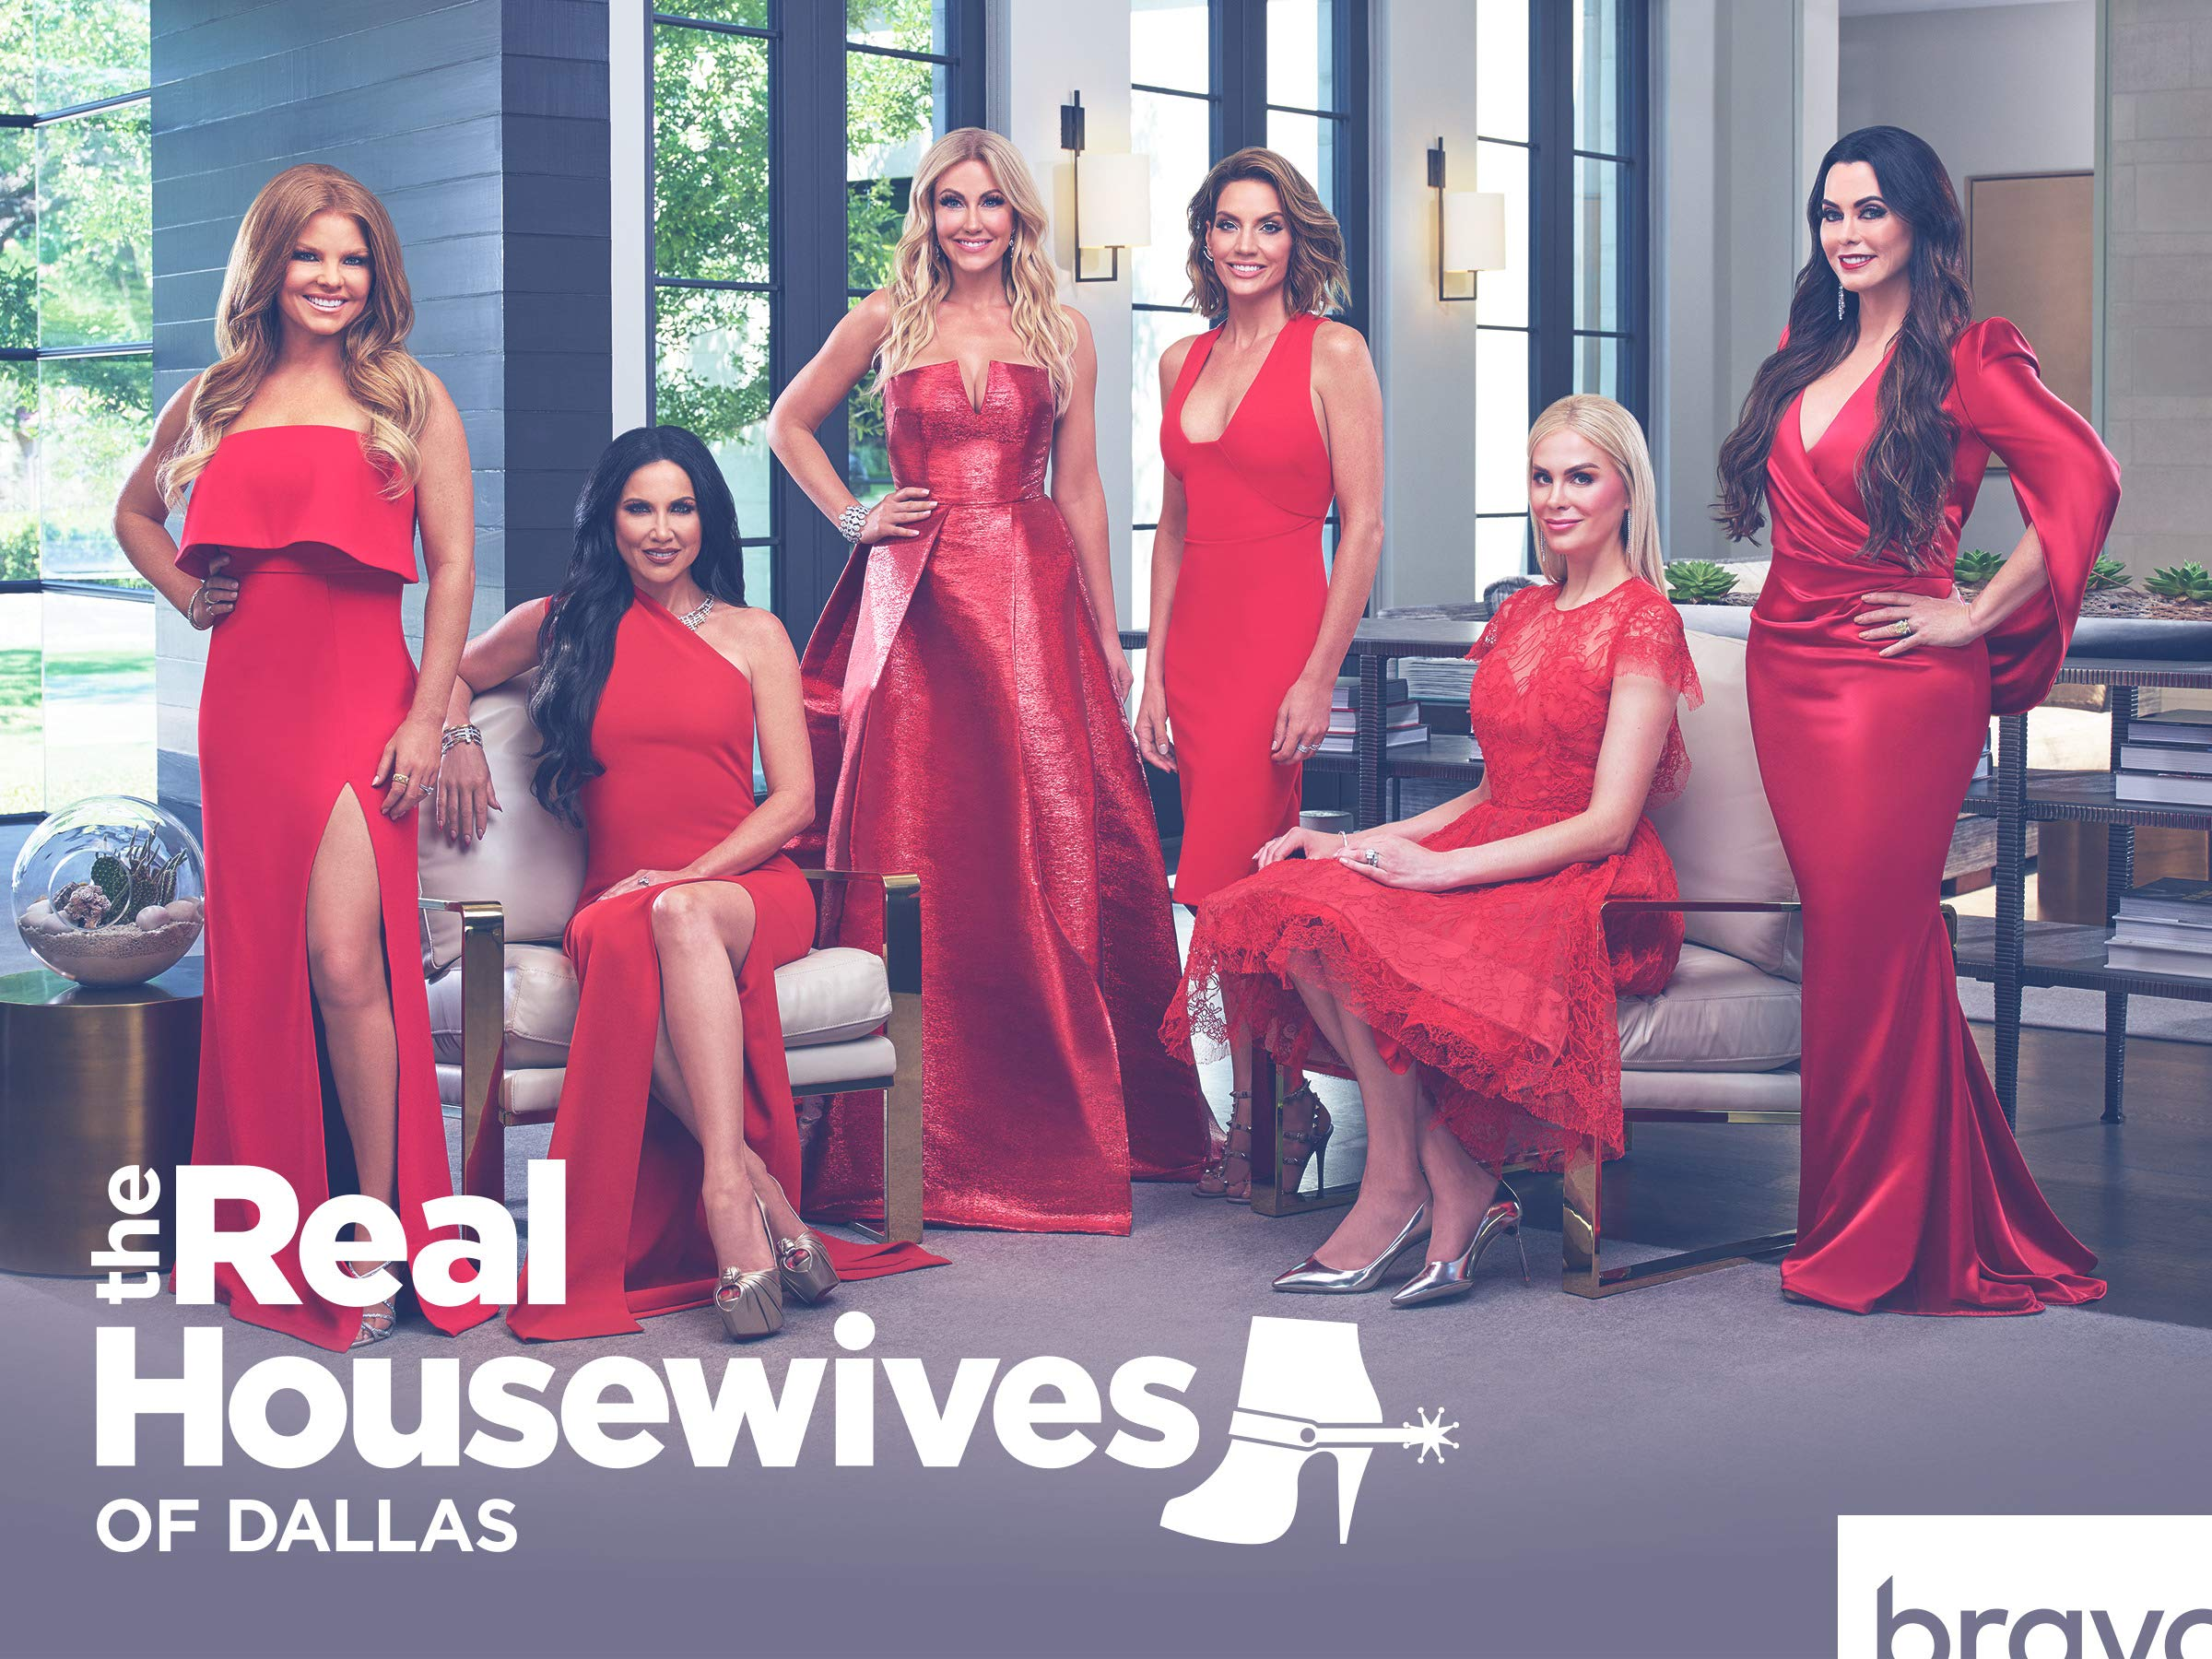 c1e3452d63d Amazon.com: Watch The Real Housewives of Dallas, Season 3 | Prime Video